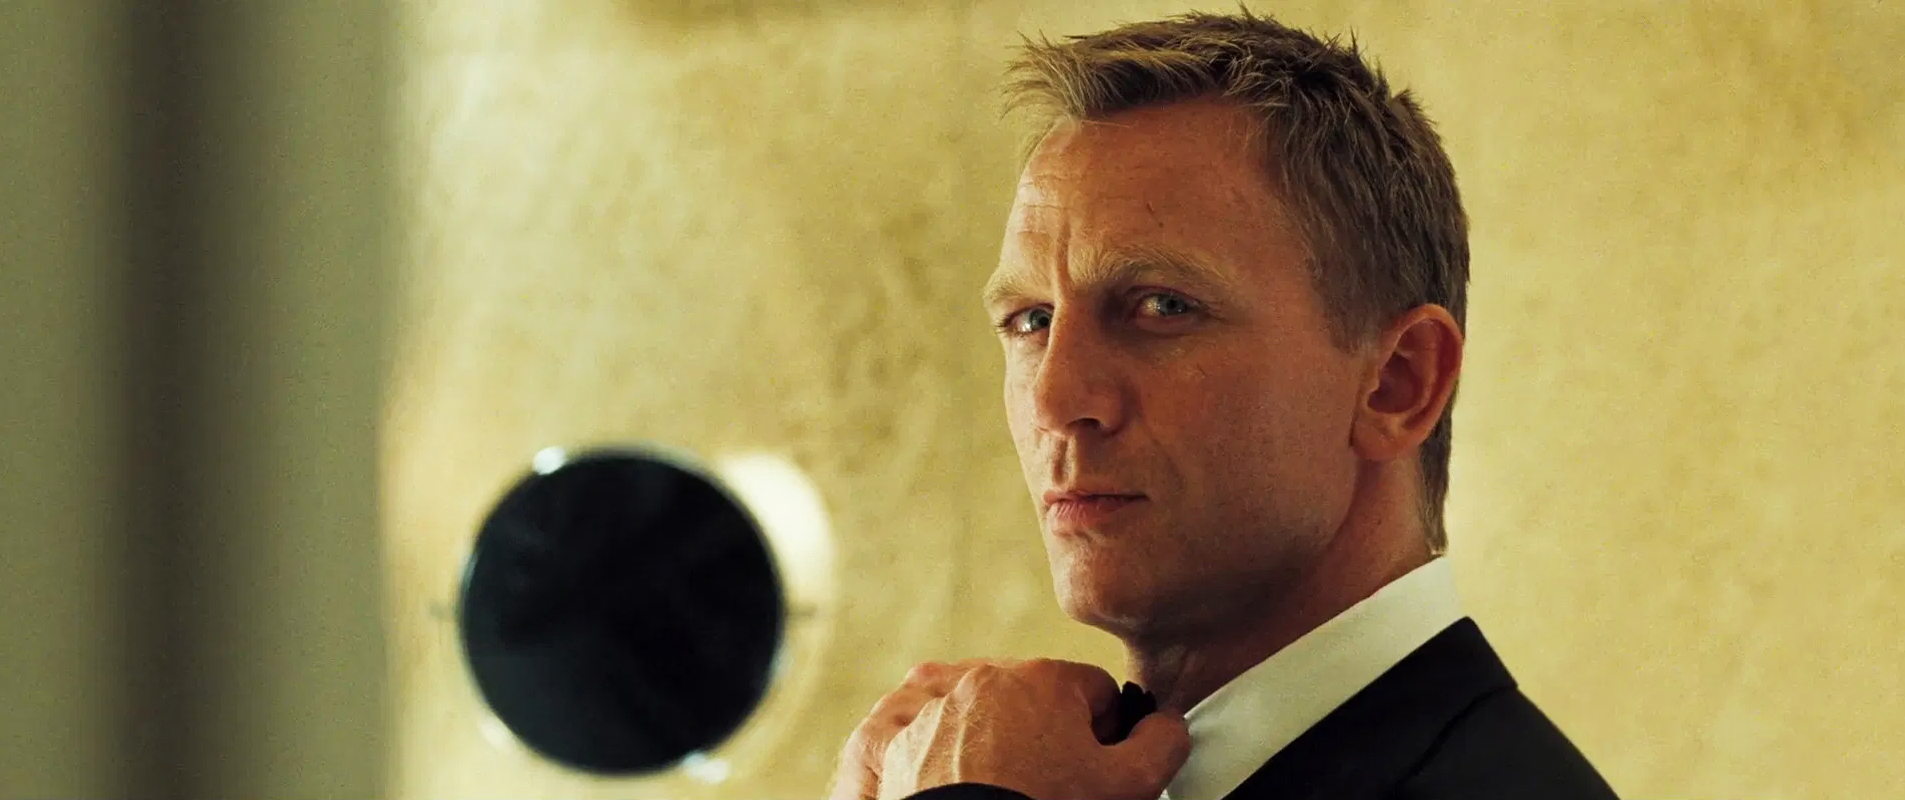 Could this have been James Bond's aftershave of choice?